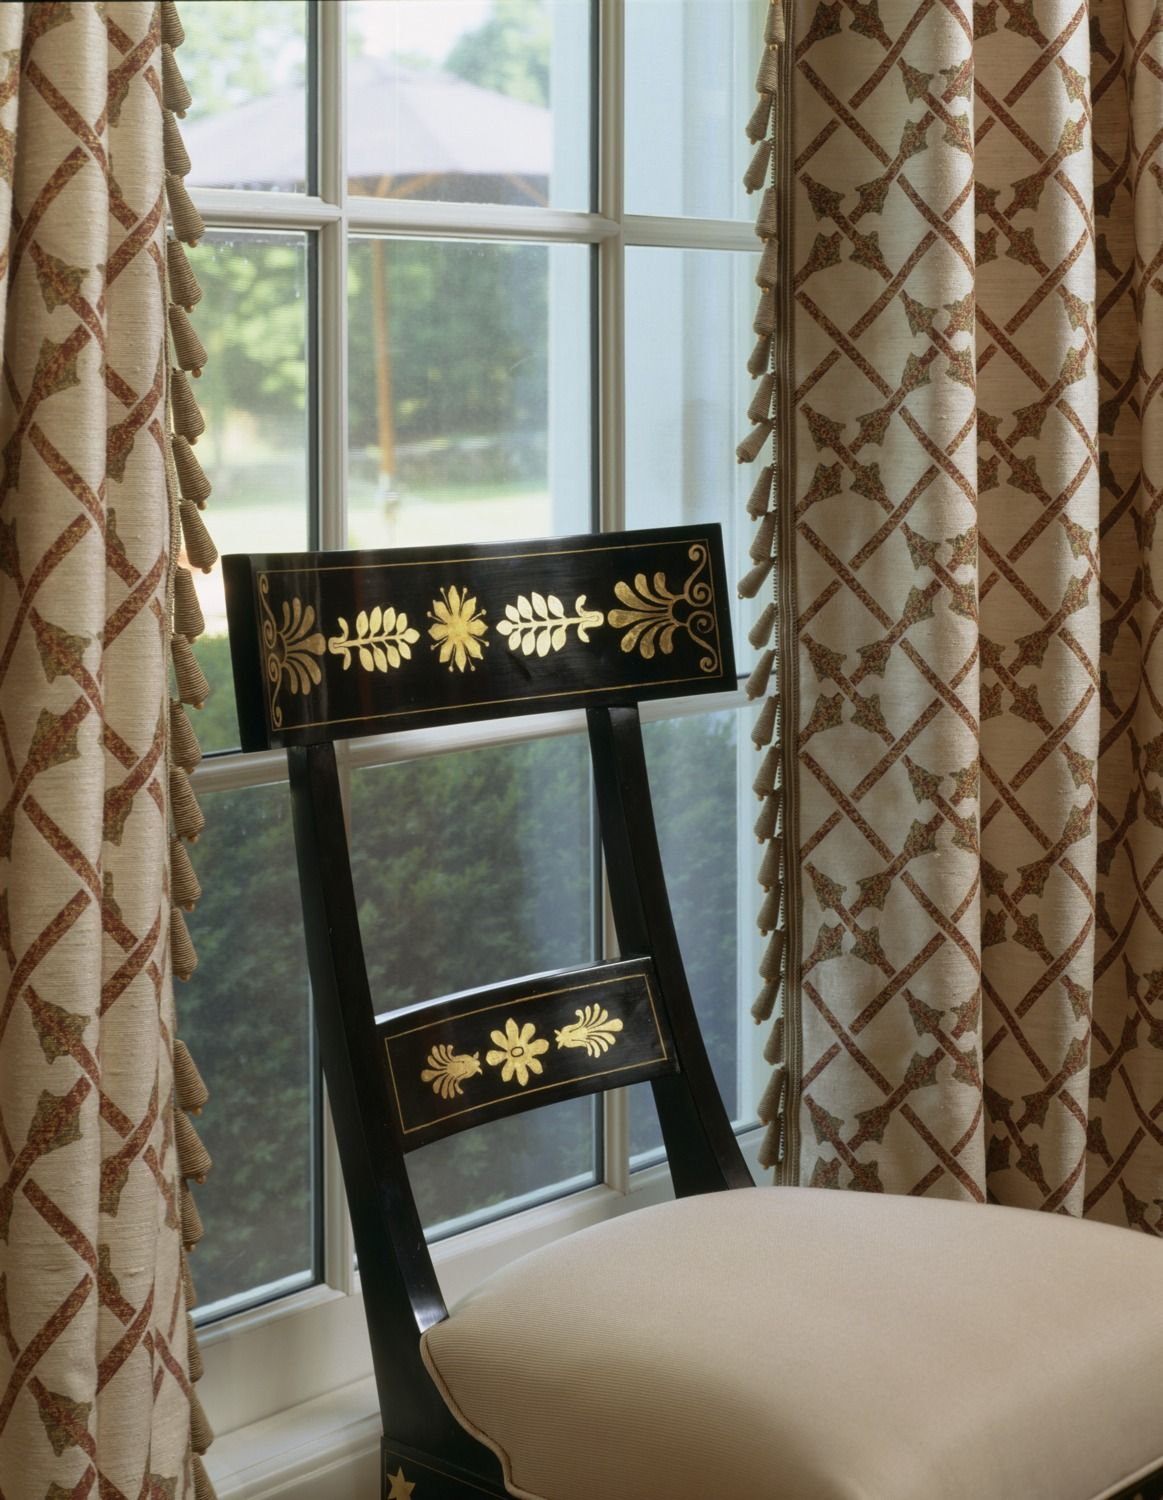 Details Curtains with blinds, Dining room chairs, Window